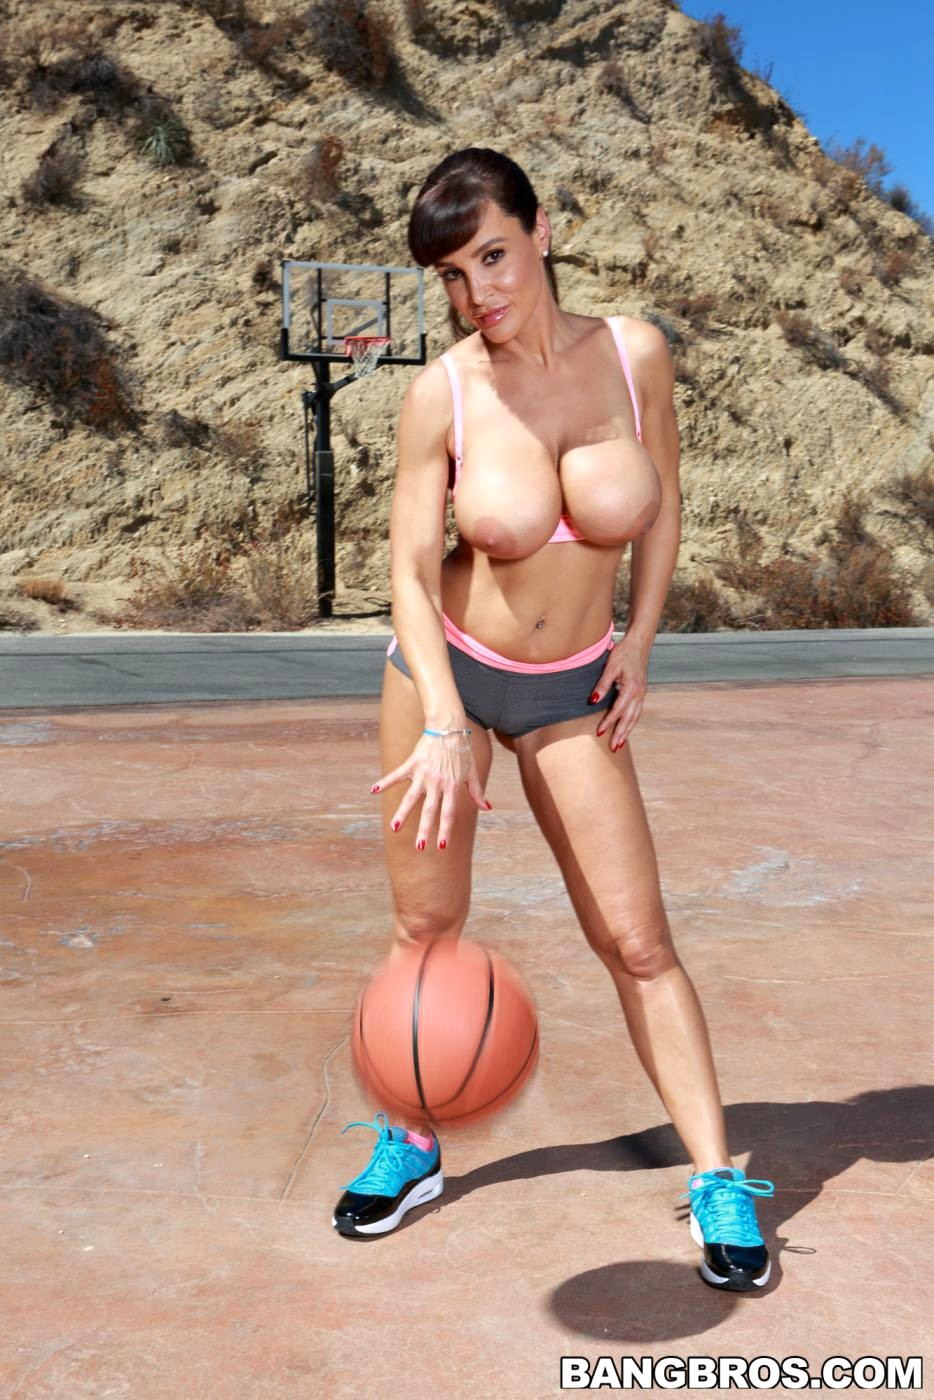 Basketball boobs naked — photo 7